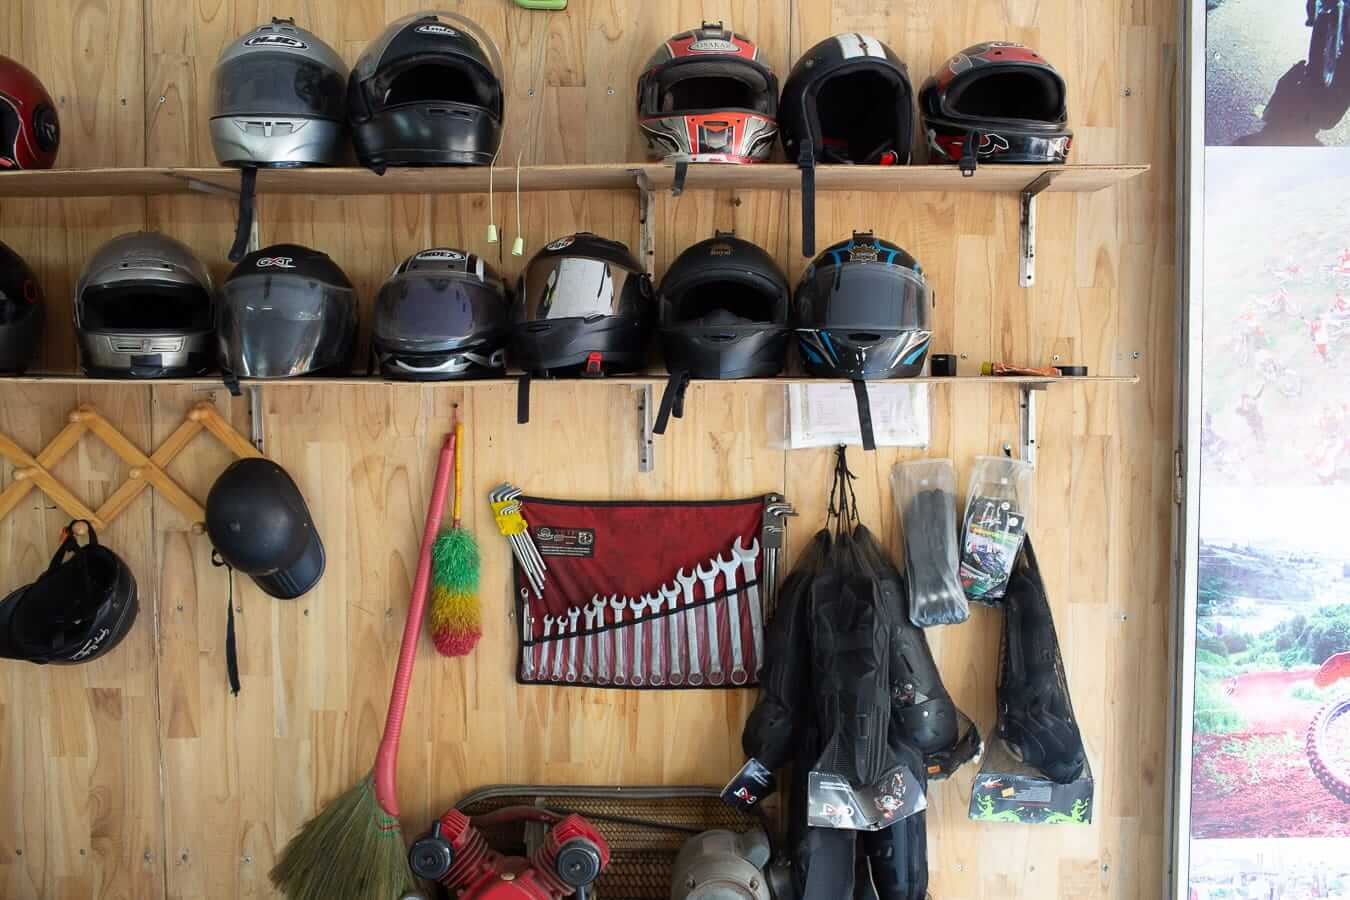 Tools and helmets at Flamingo: Motorbike Rental Shops in Hoi An